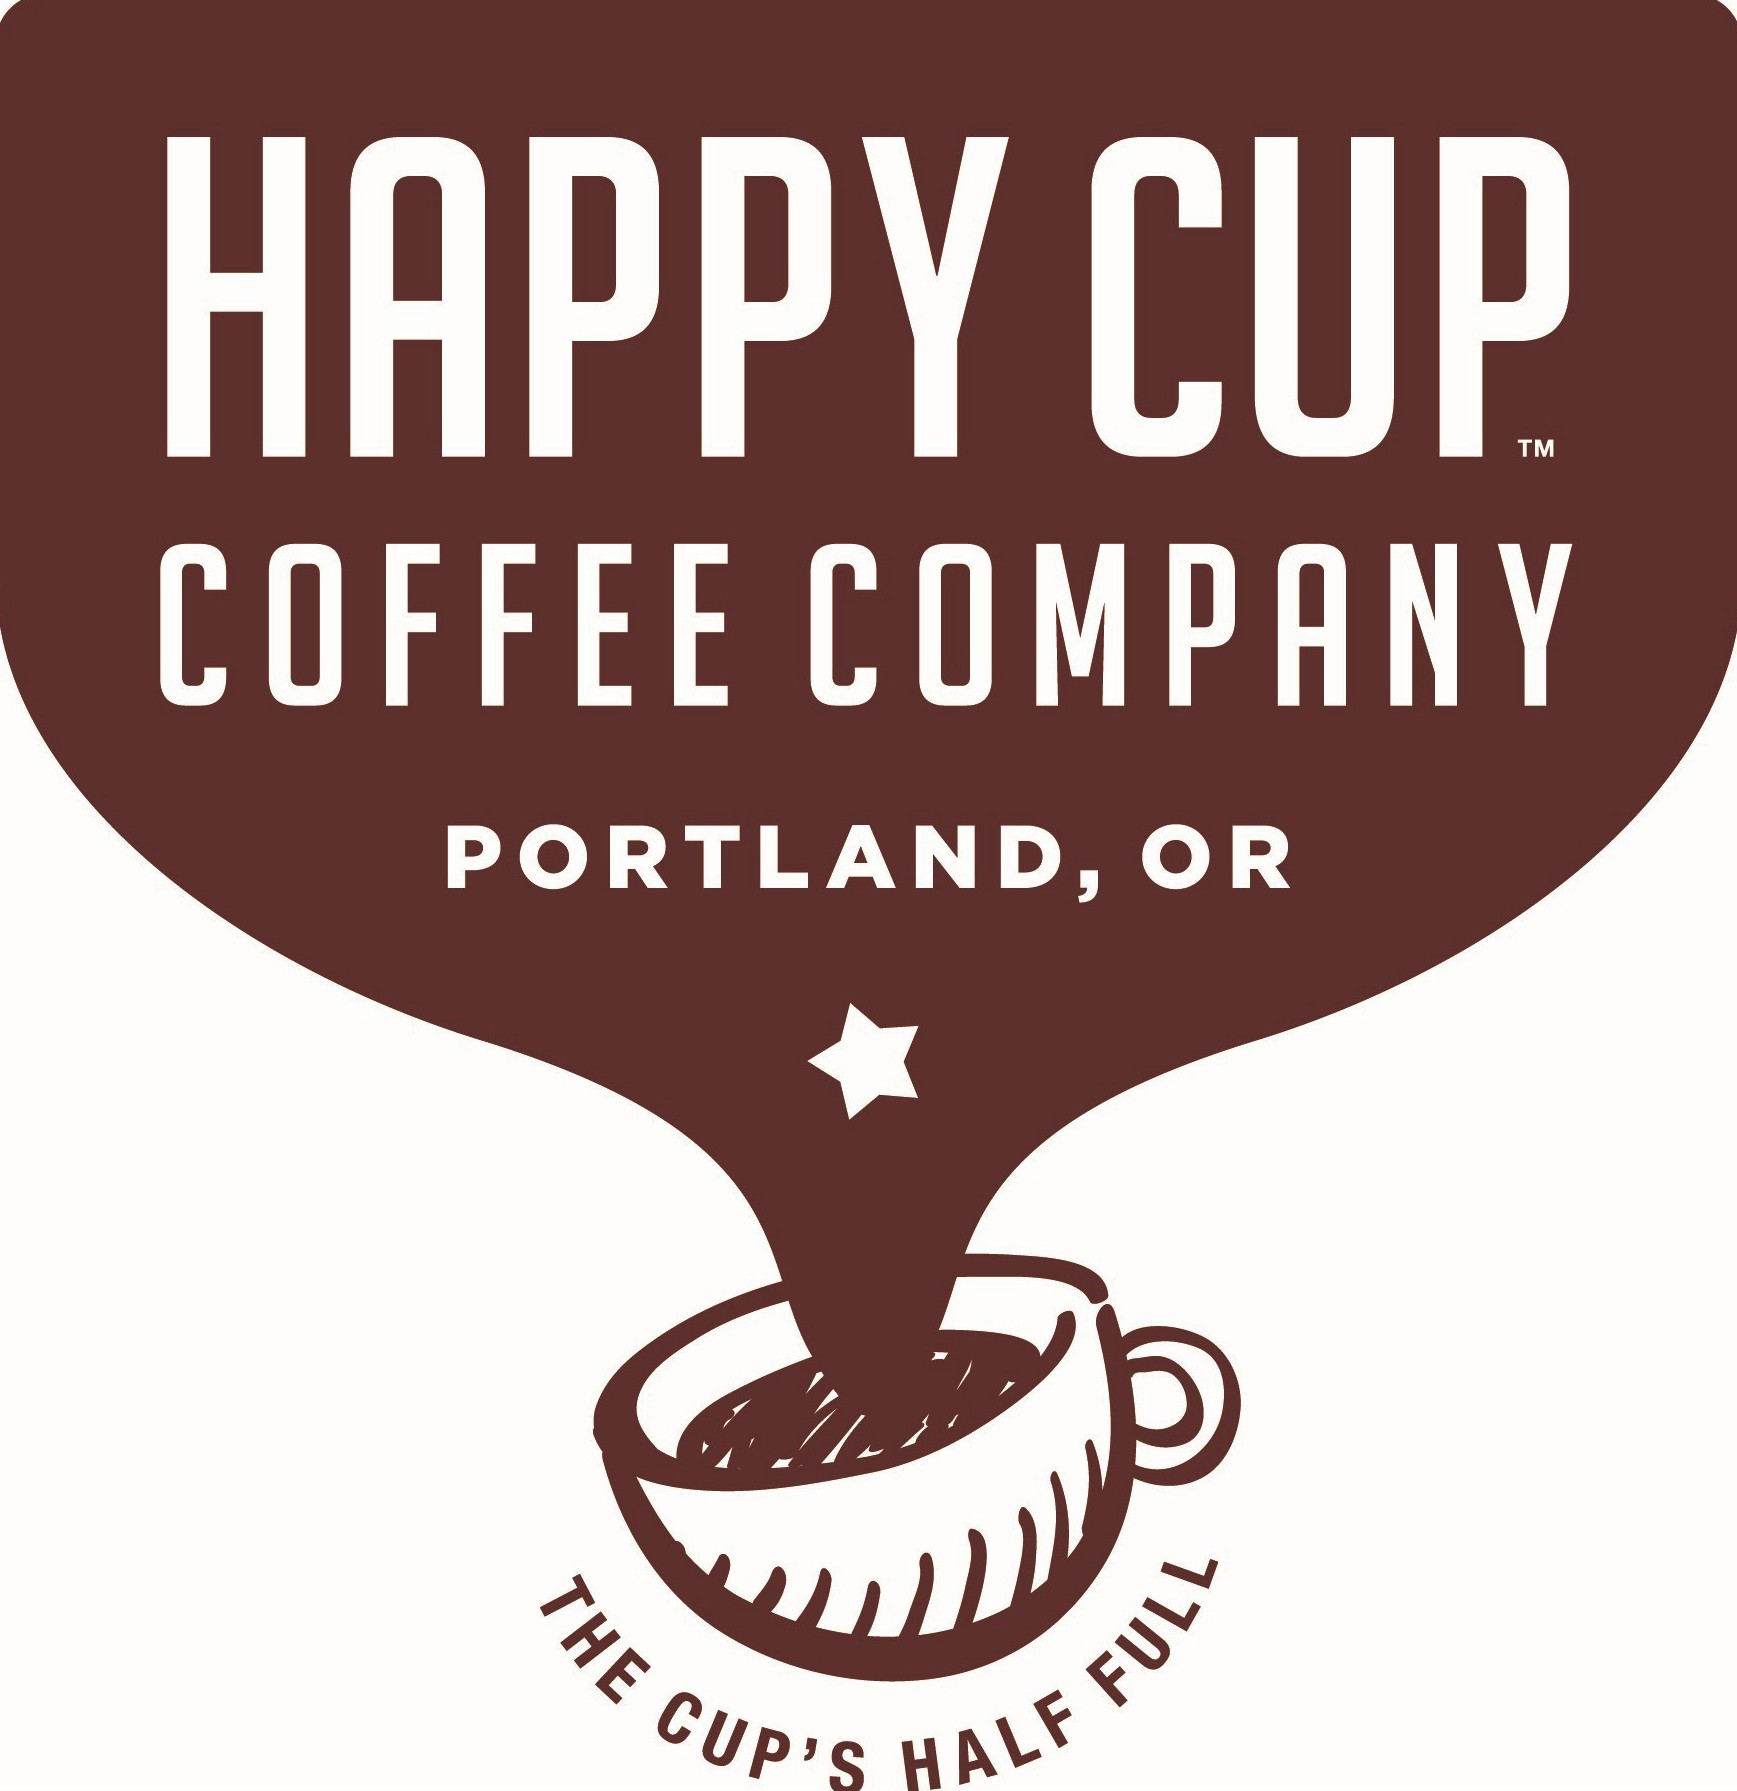 Happy Cup coffee co